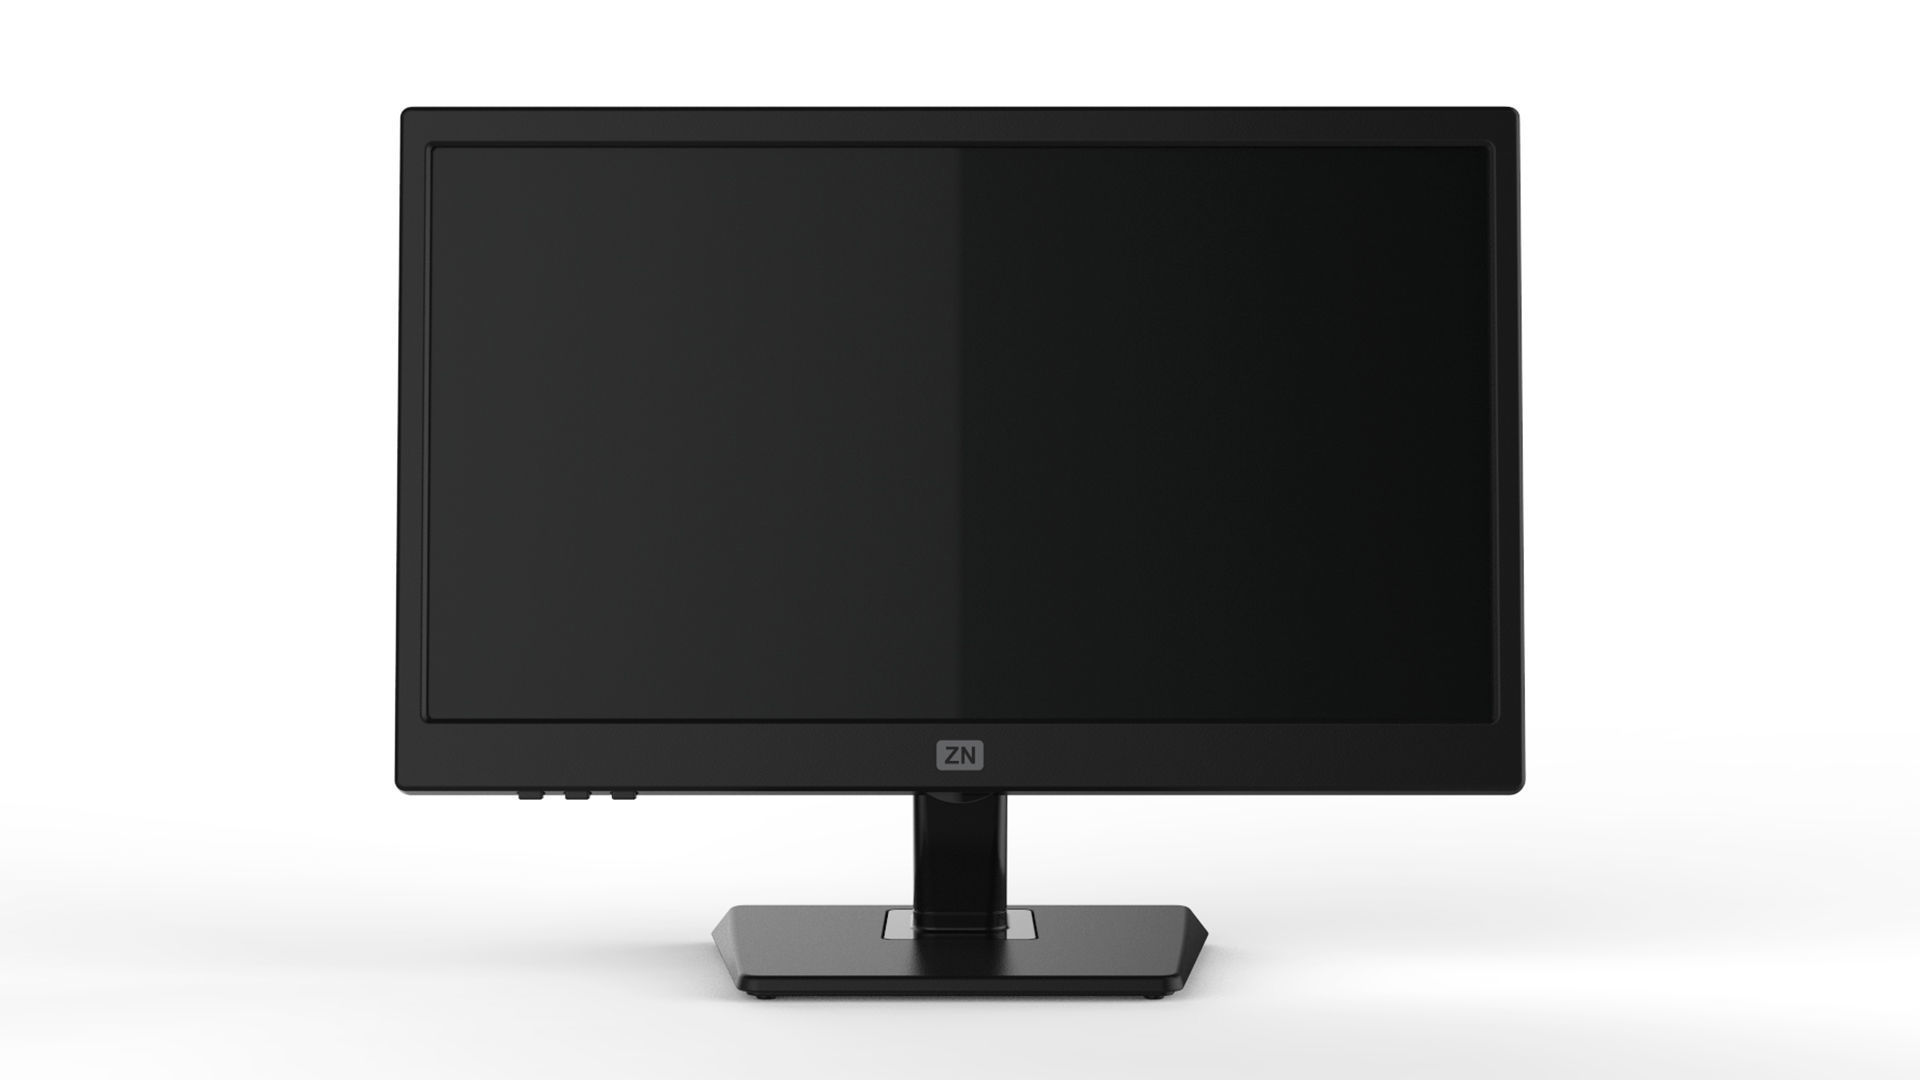 Generic Monitor 19 5 Inches